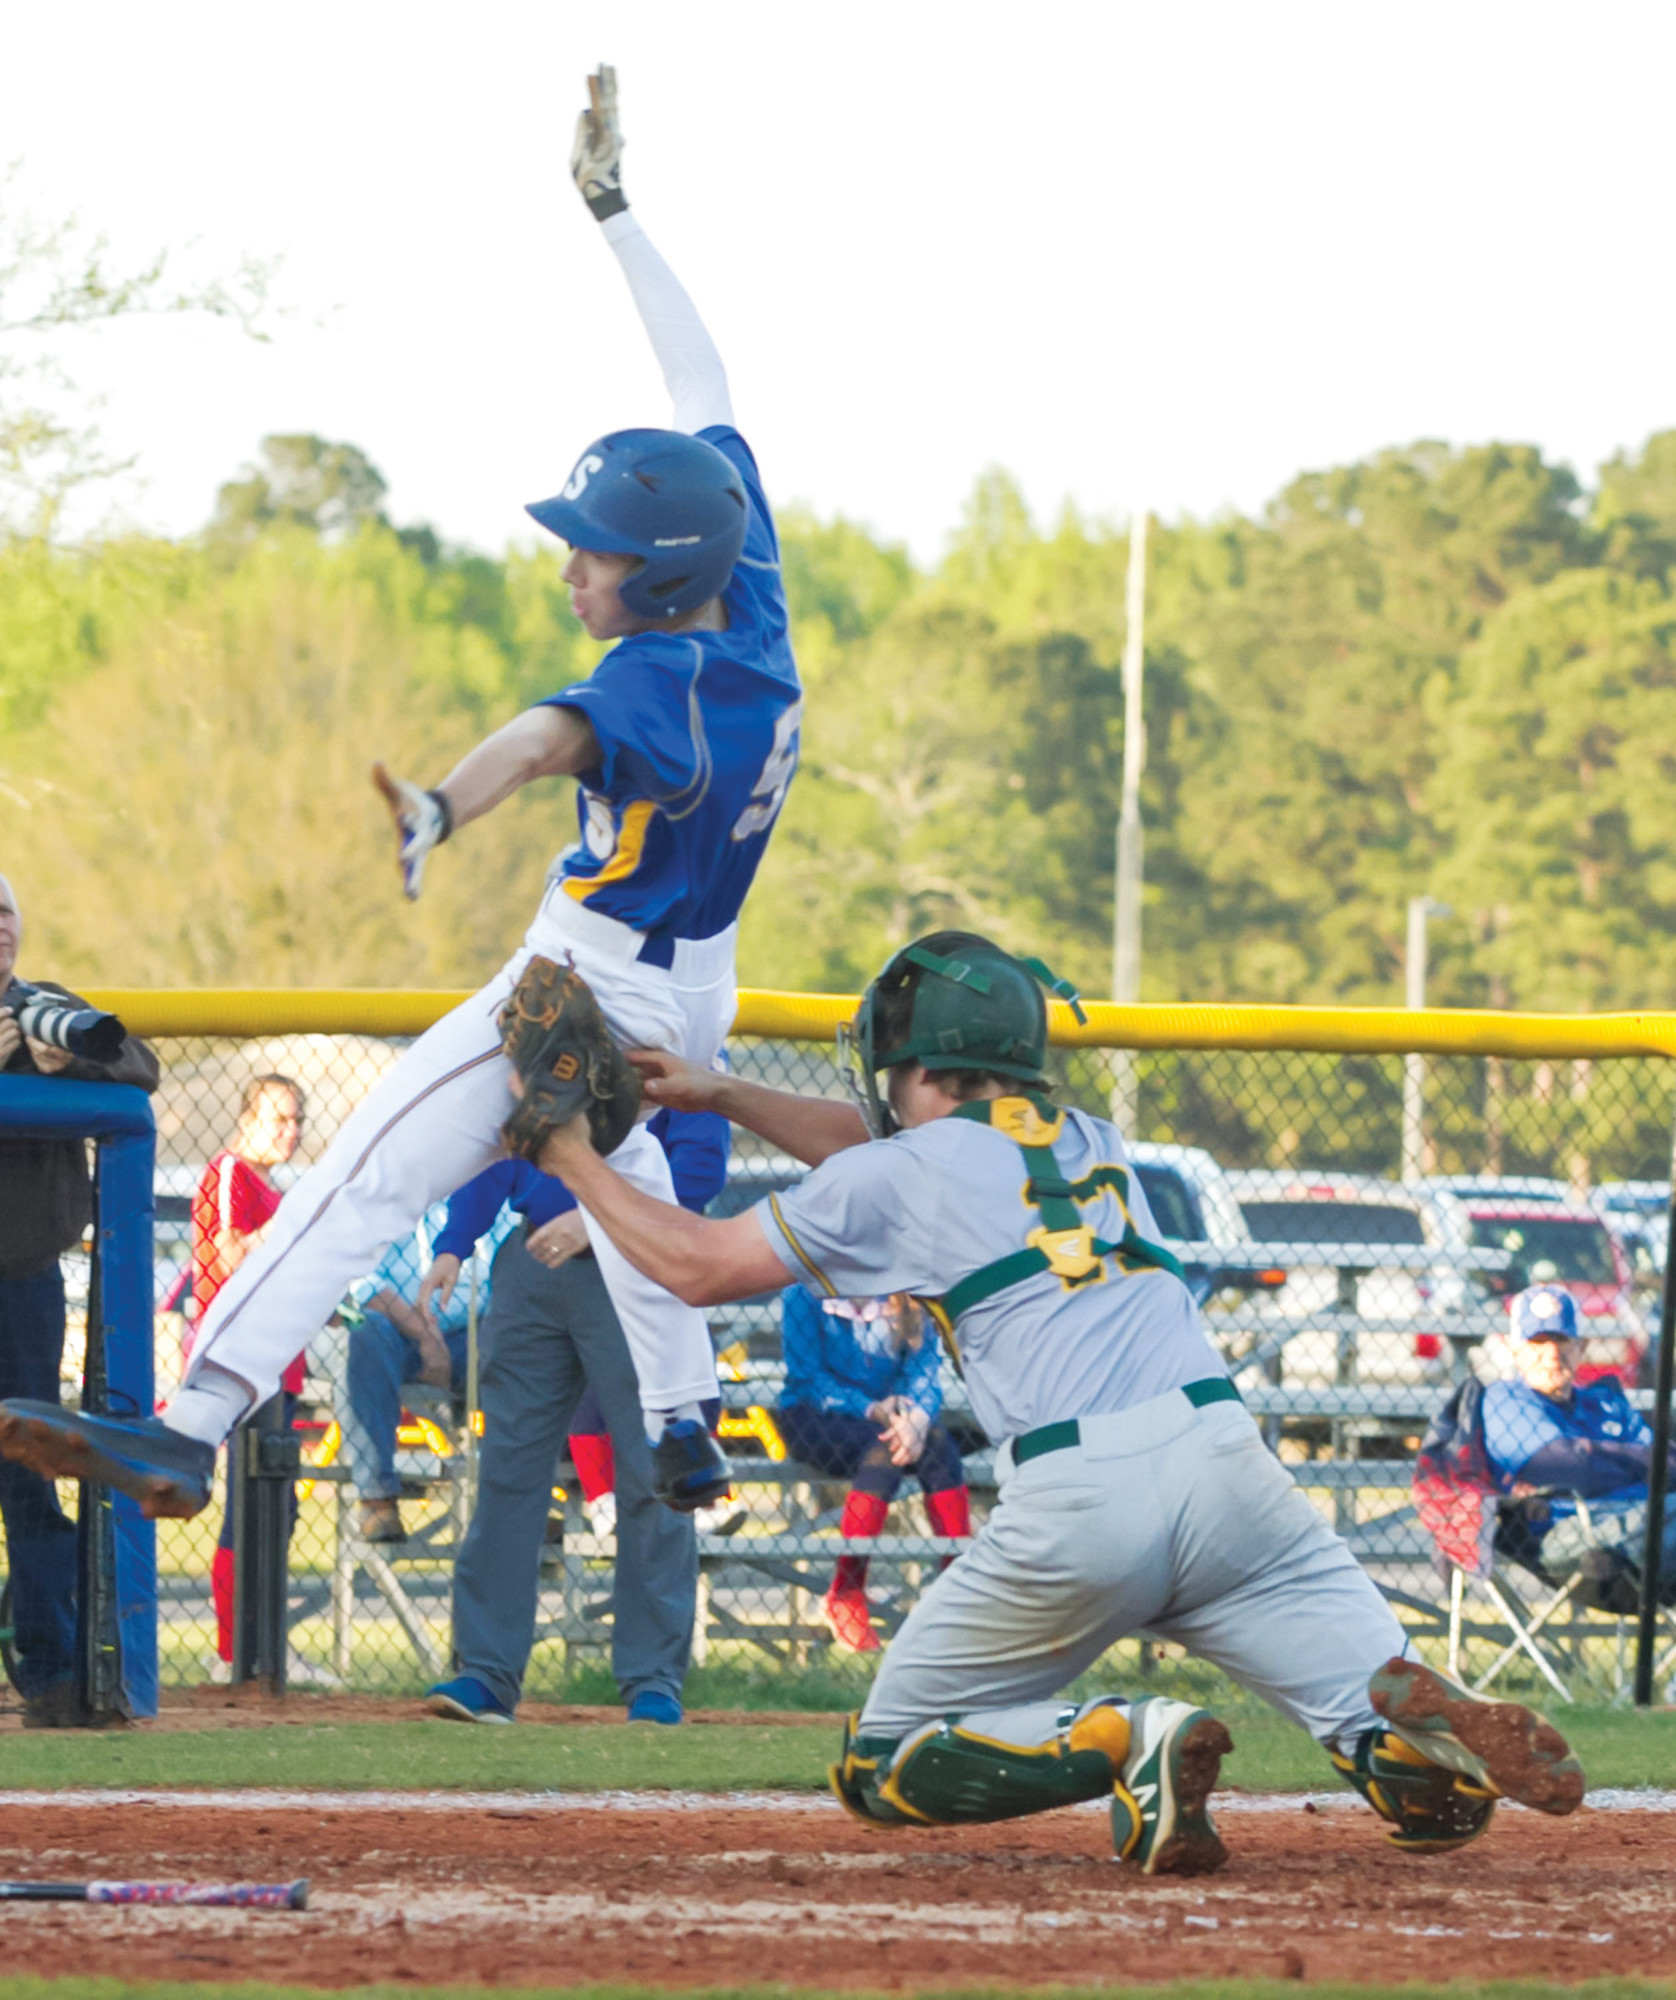 Sumter's Jackson Hoshour (5) is tagged out at home by West Florence catcher Brennan Herndon in the Gamecocks' 3-2, 8-inning win on Tuesday at Gamecock Field.